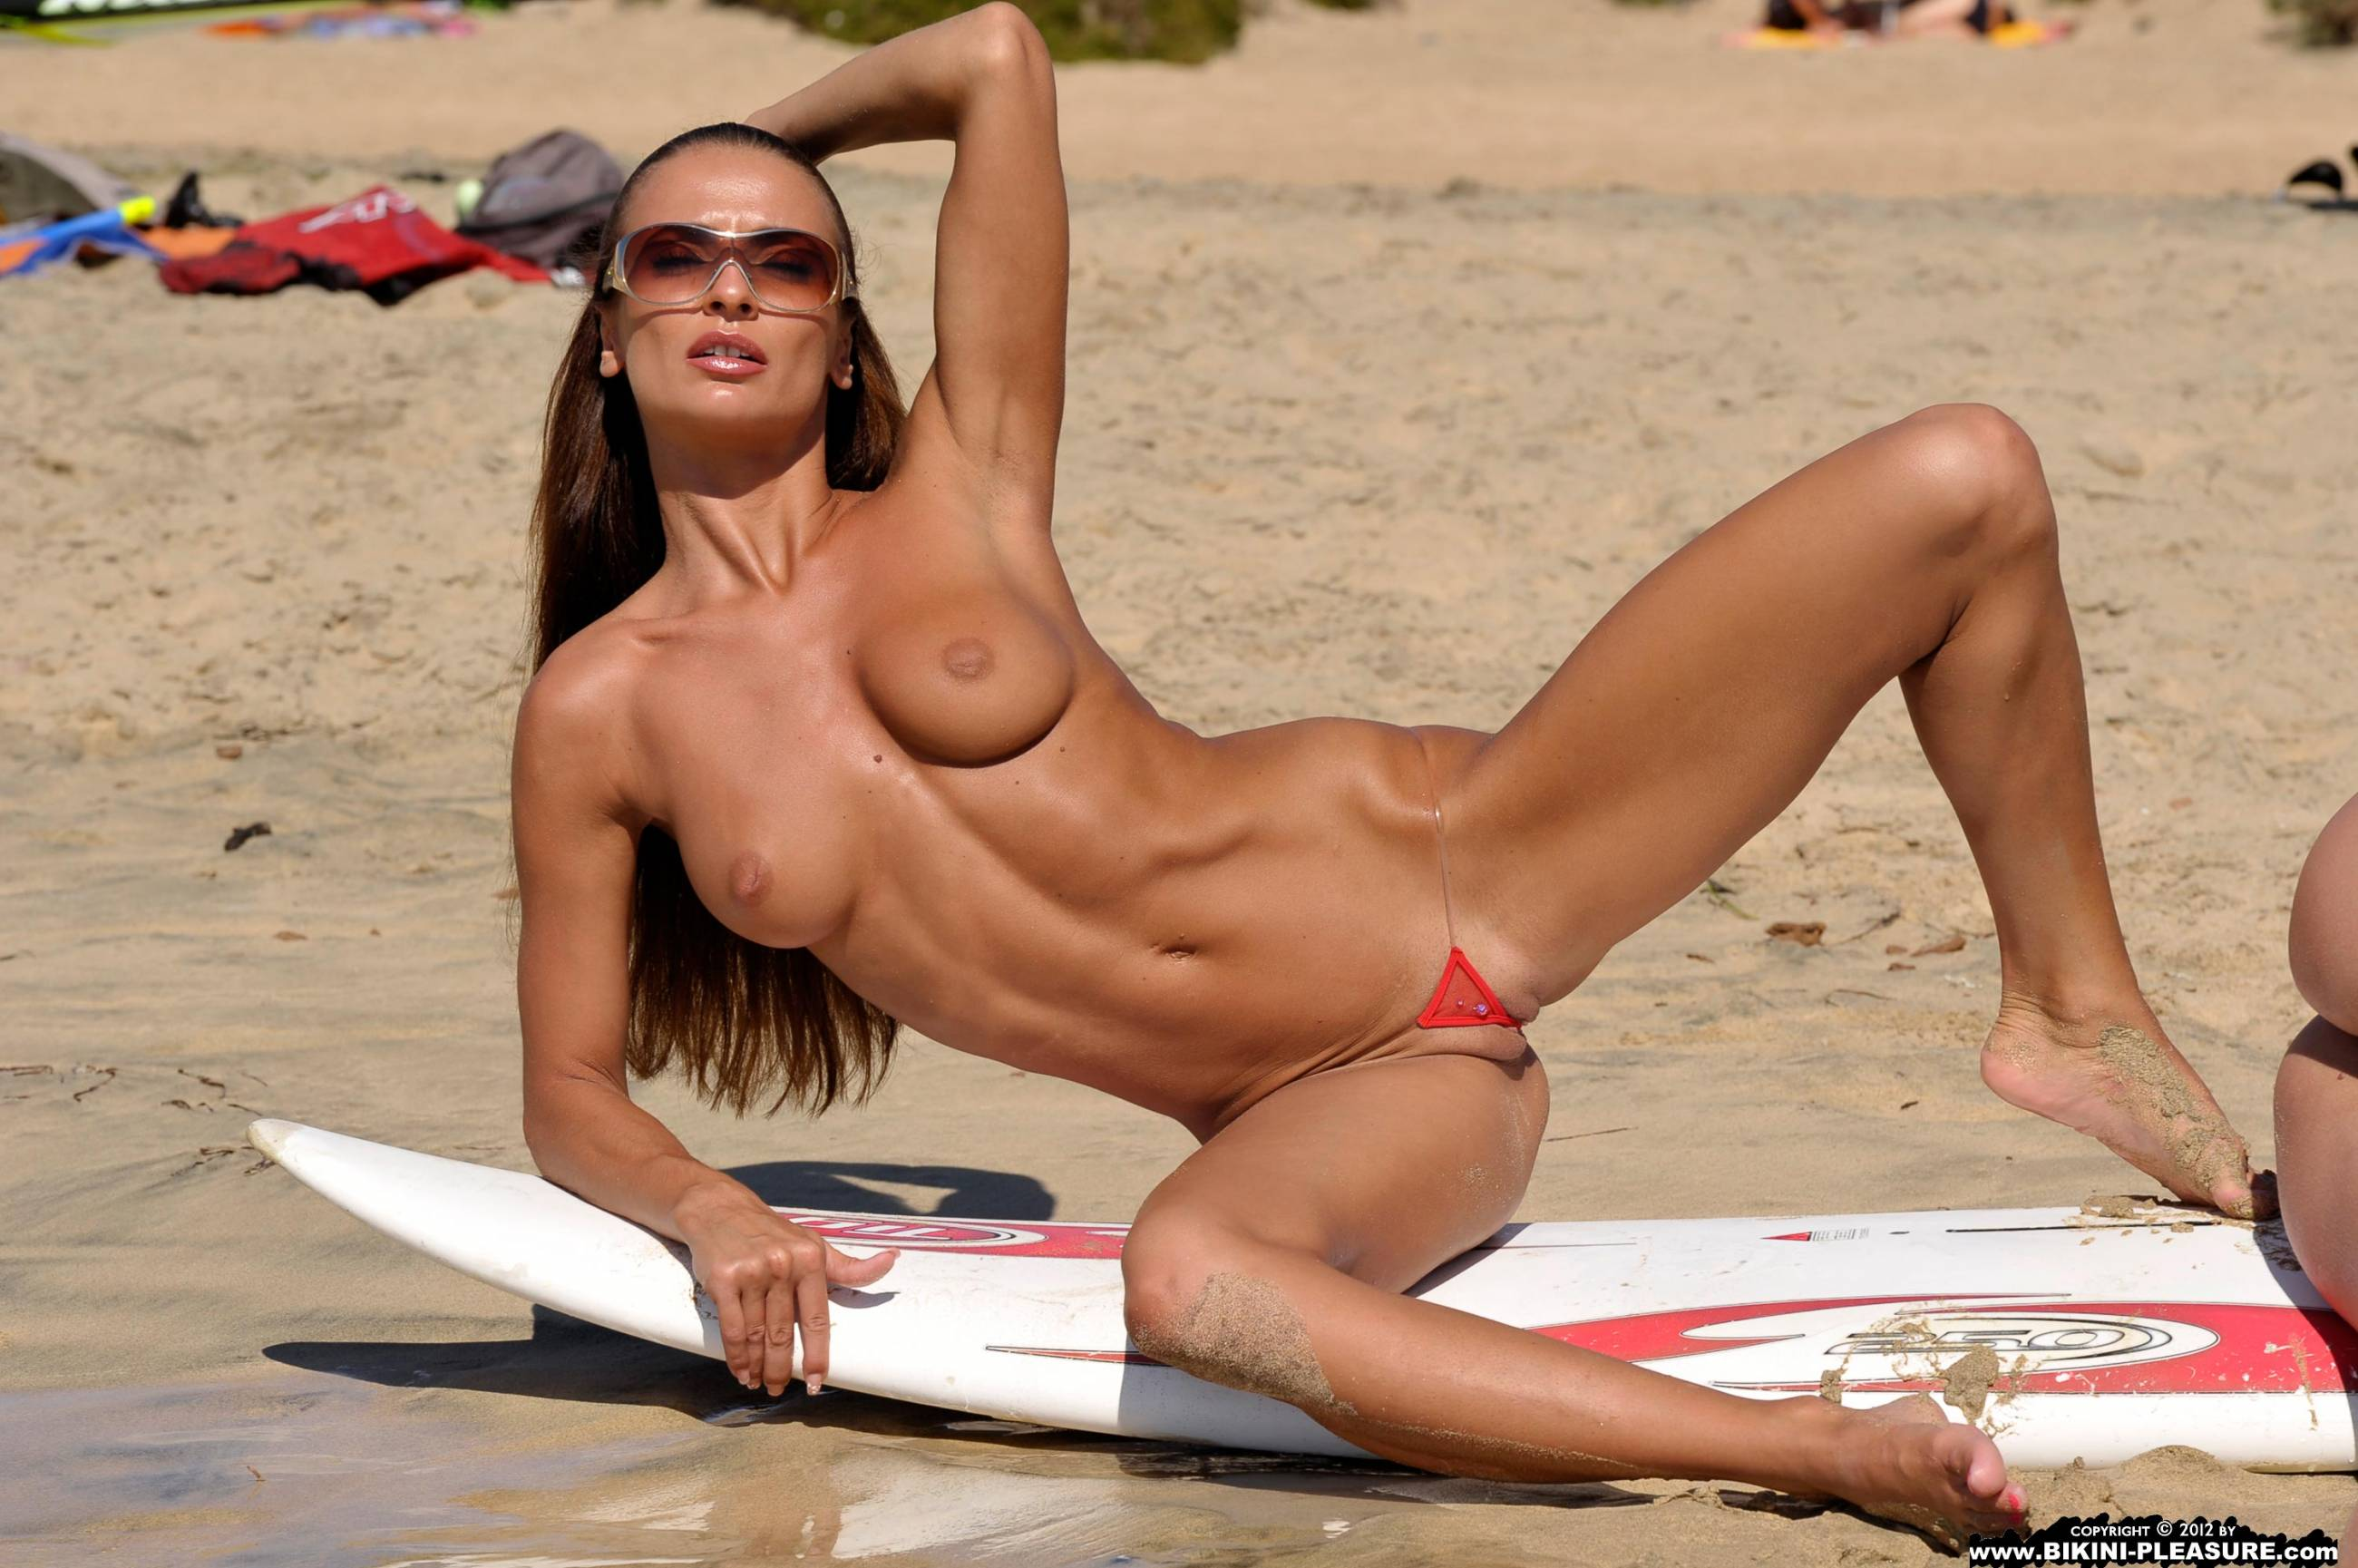 pictures-of-beach-women-in-sexy-bikinis-having-sex-crazy-womans-xxx-immagini